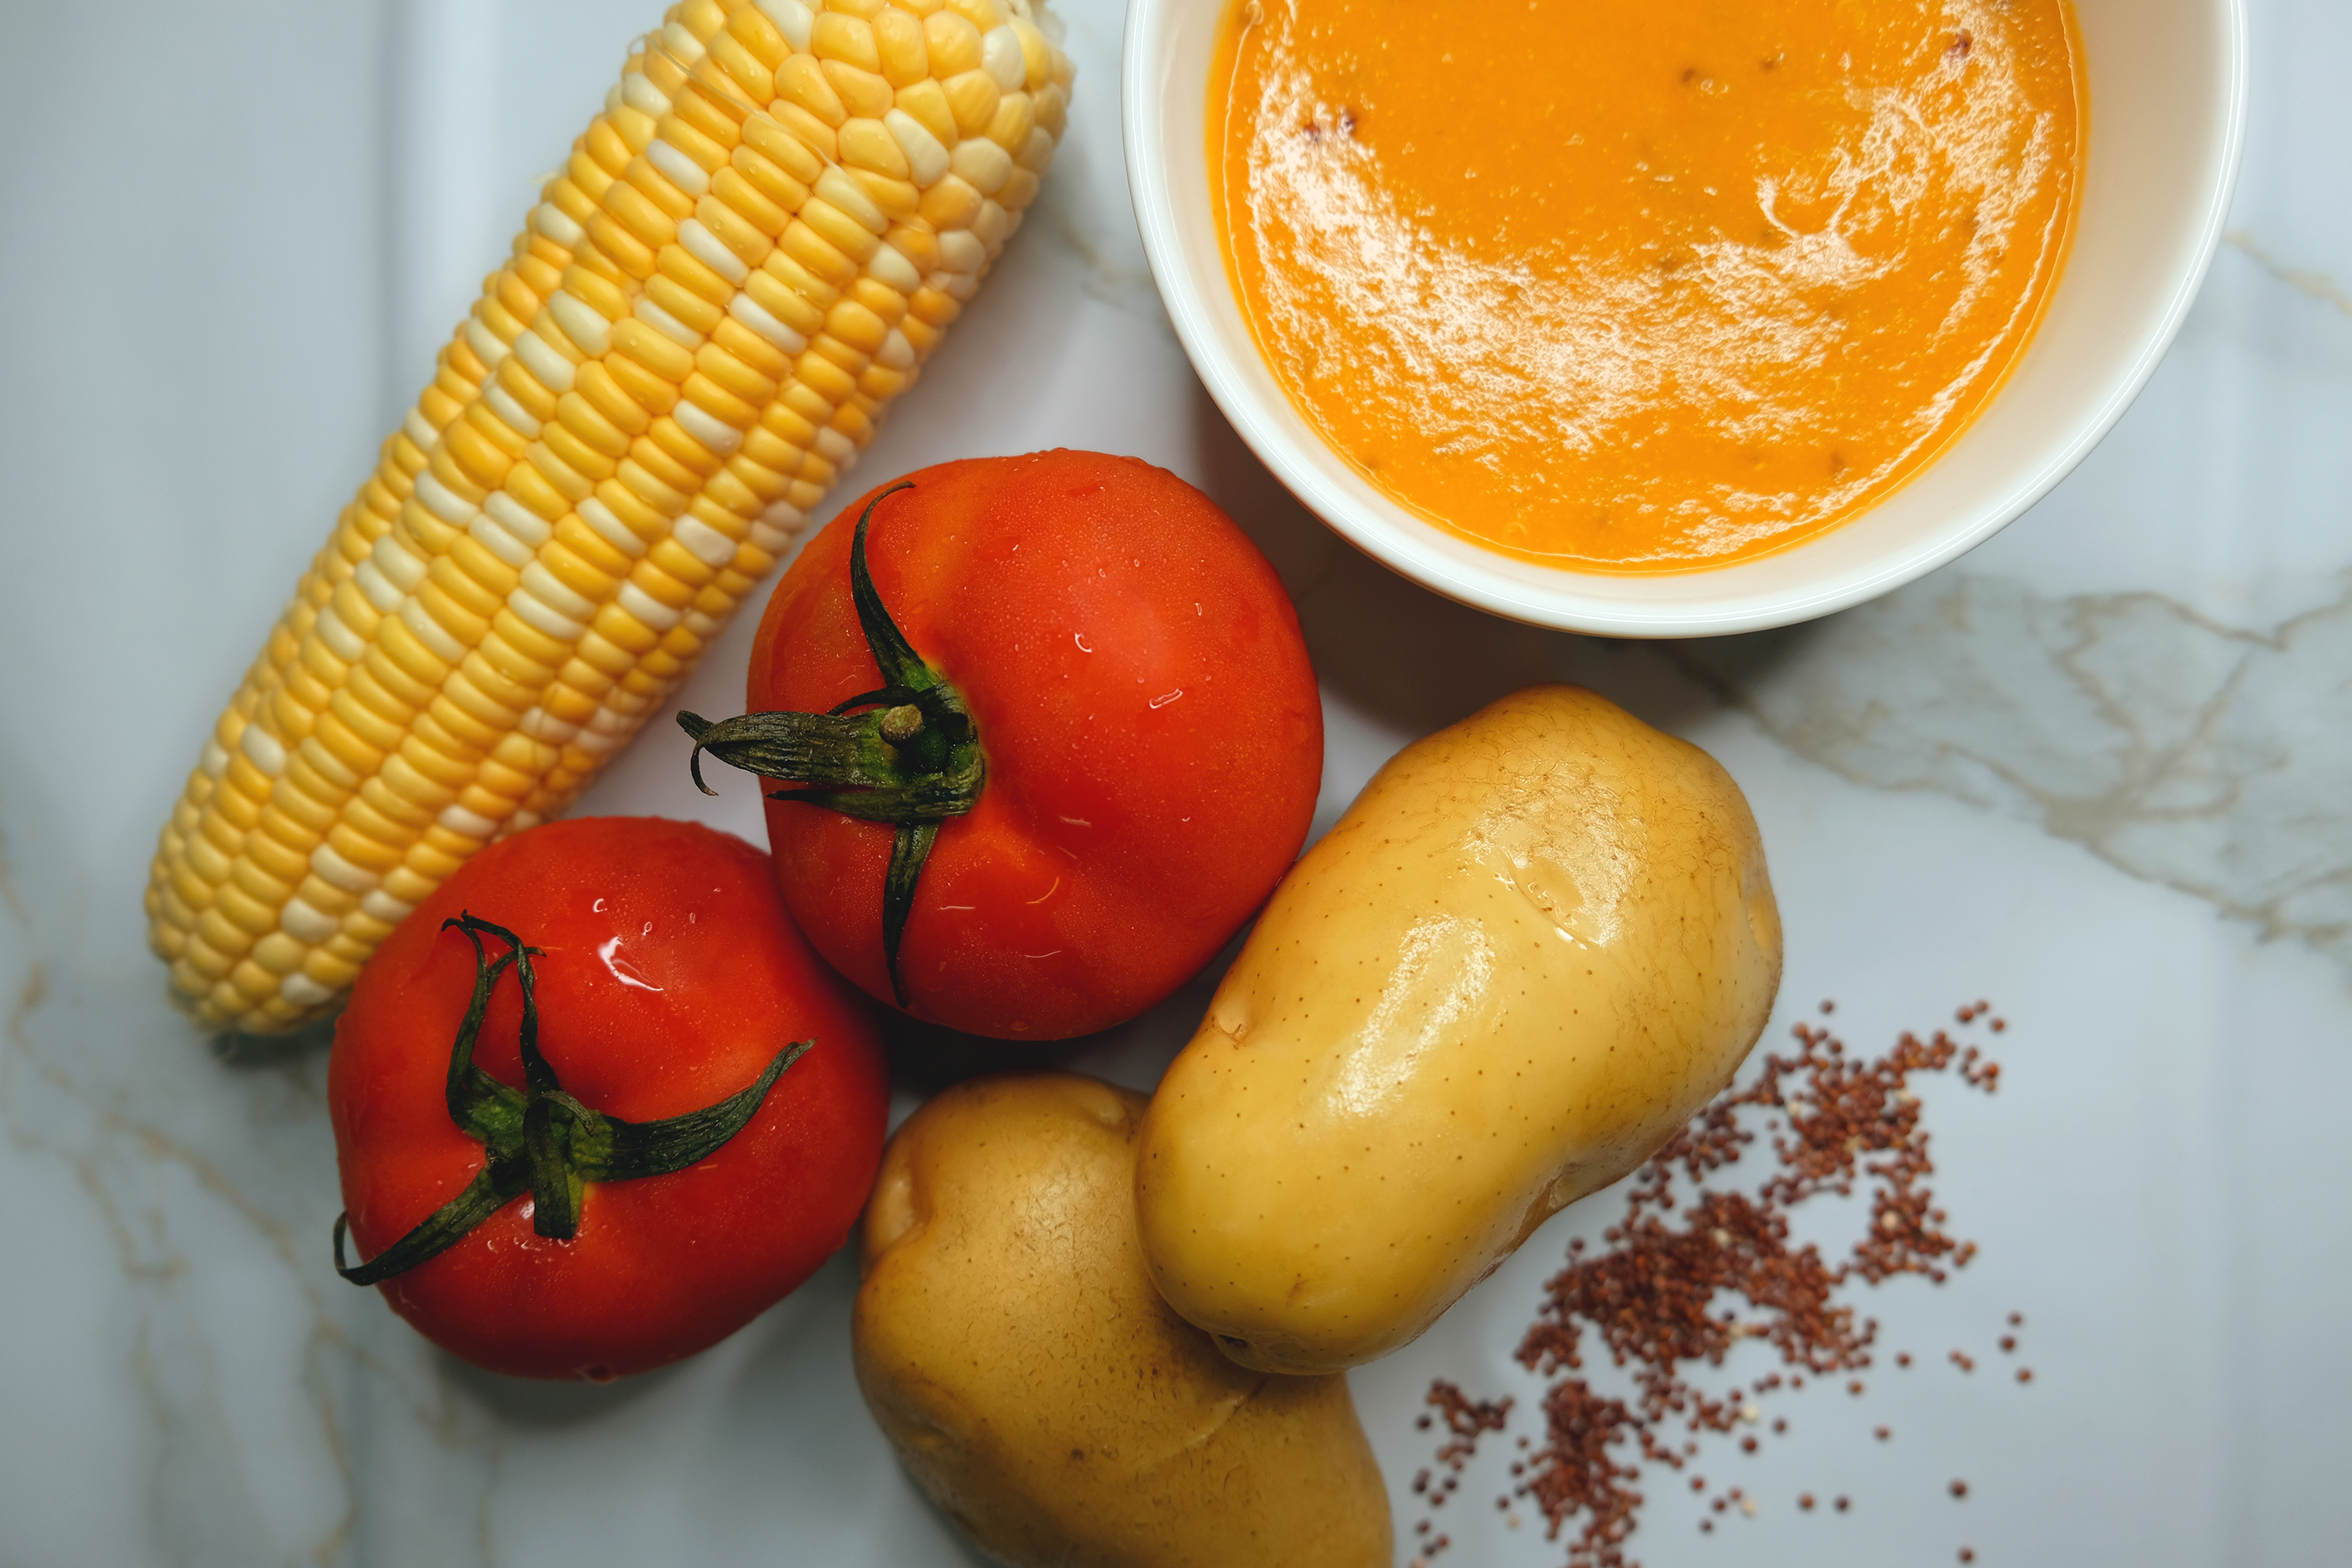 KOL Series: Anti-Aging Guardian (TOMATO SWEET CORN QUINOA POTATO SOUP)